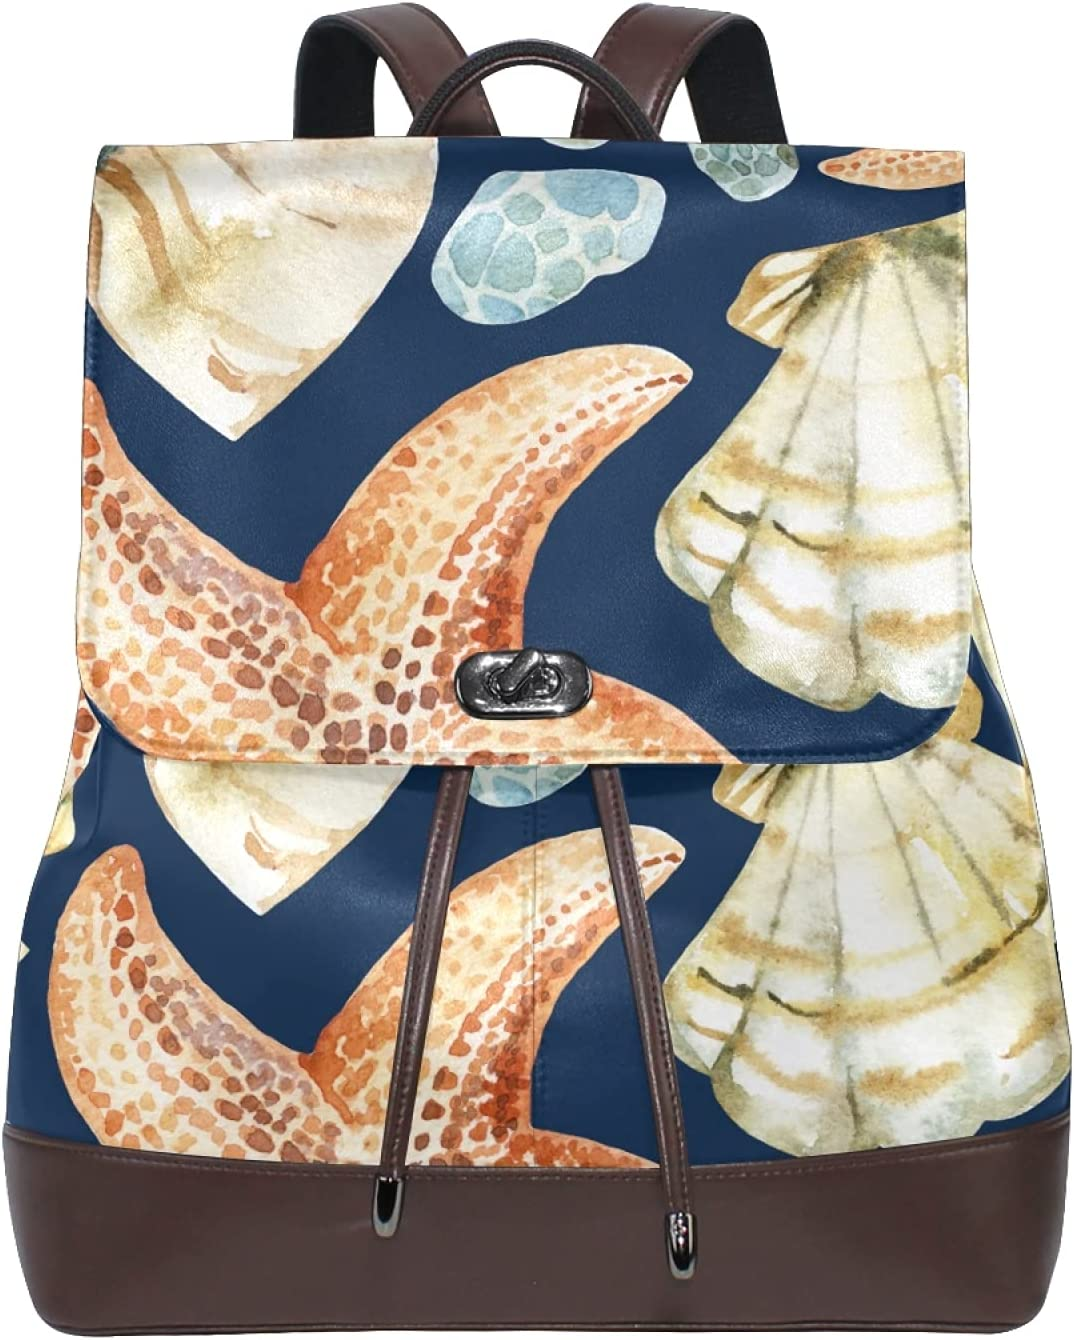 Women Leather Backpack Ladies Fashion Shoulder Bag Large Travel Bag Sea Shells And Starfishes